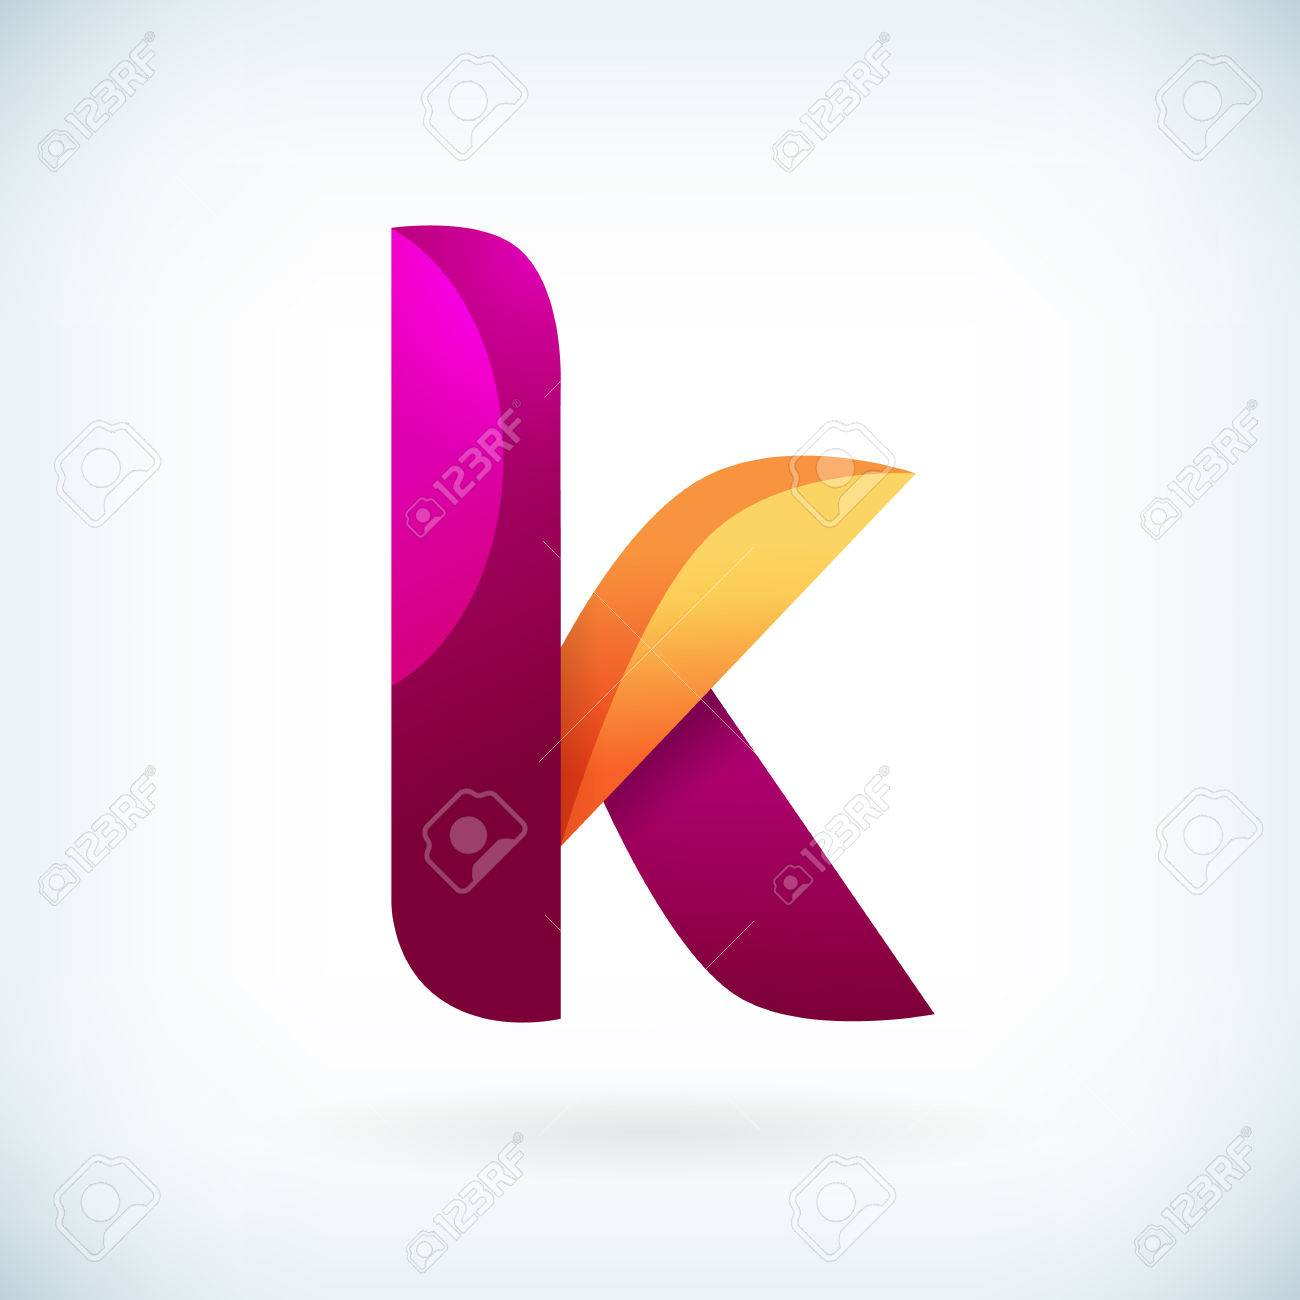 Modern Twisted Letter K Icon Design Element Template Royalty Free ...